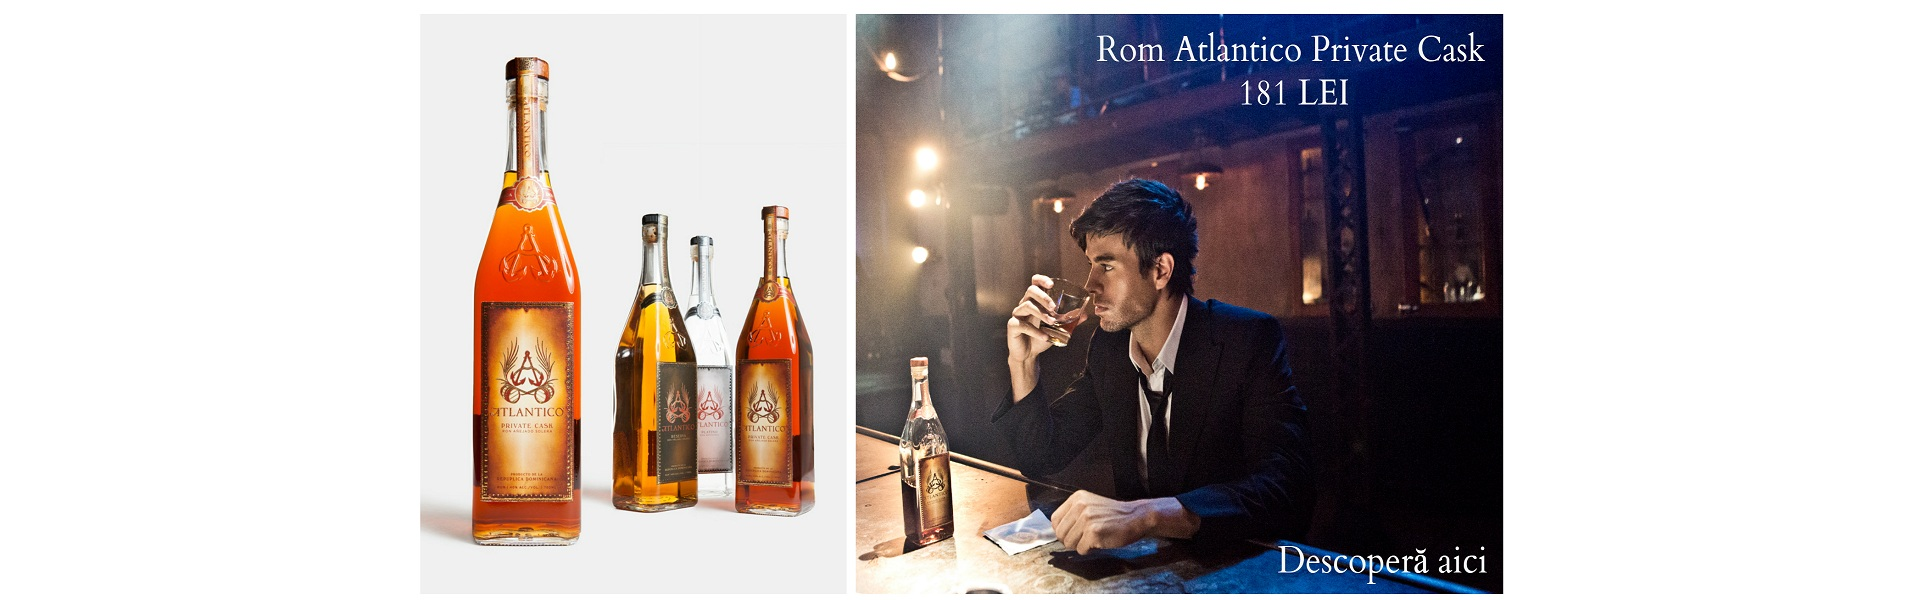 Rom Atlantico Private Cask